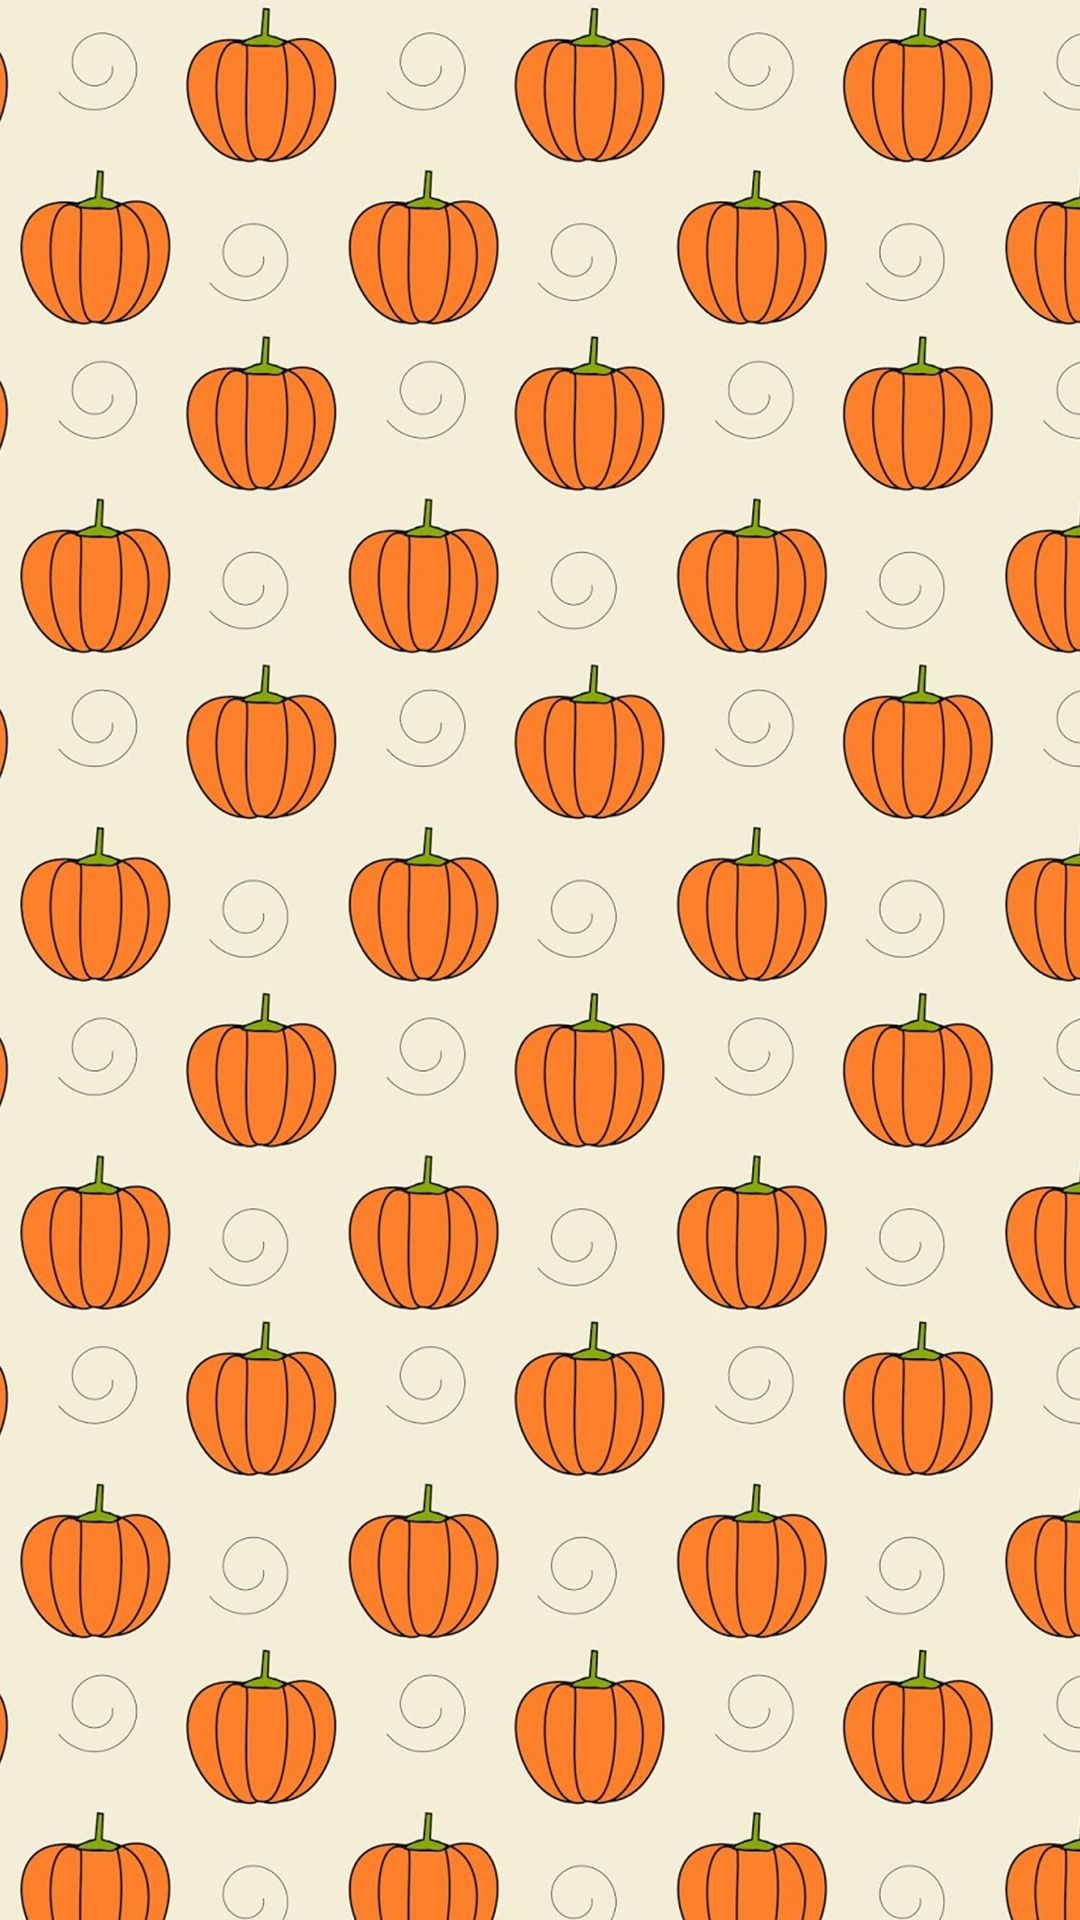 Halloween Wallpaper Iphone Cute.Pumpkins Tap To See More Cute Halloween Wallpaper Mobile9